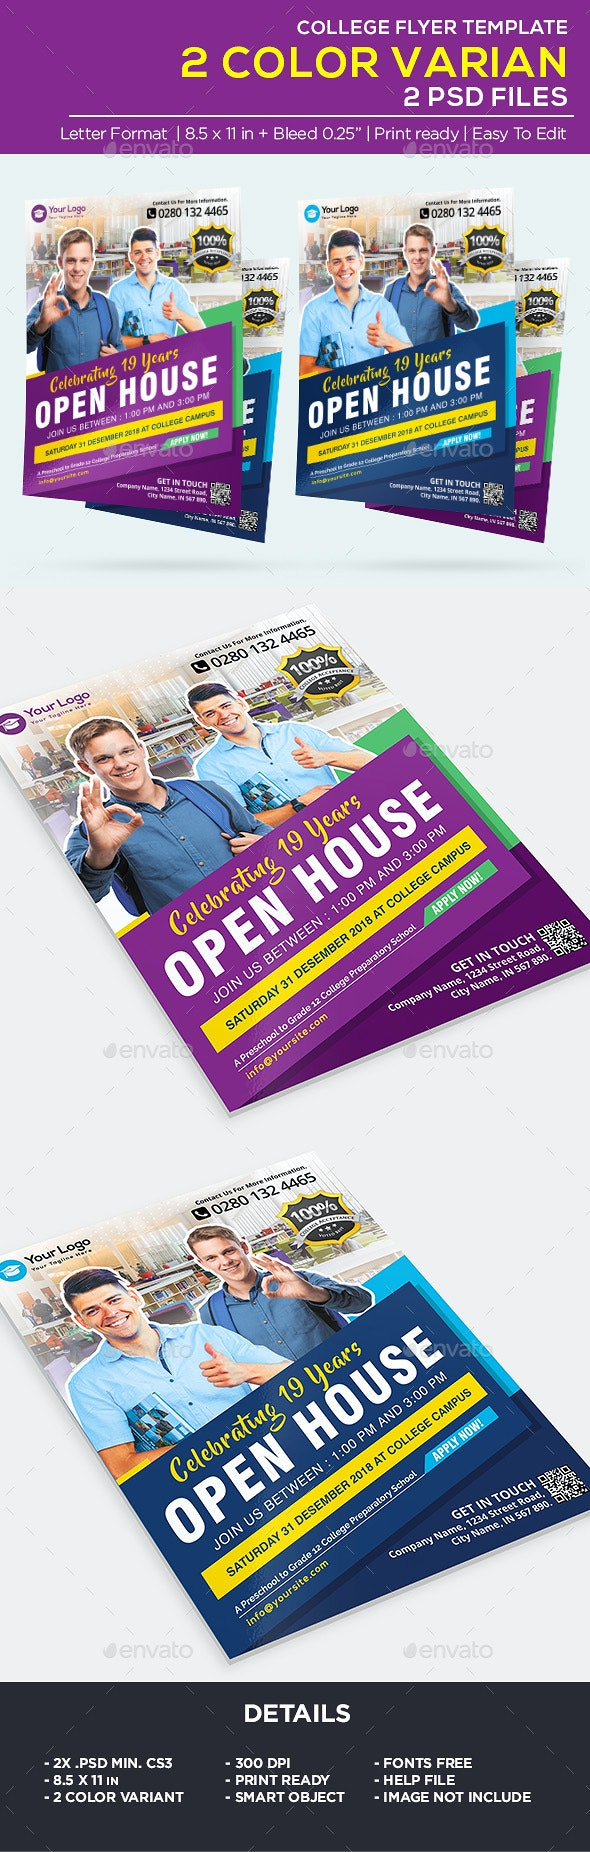 Business College Flyer - Open House Flyer - Corporate Flyers